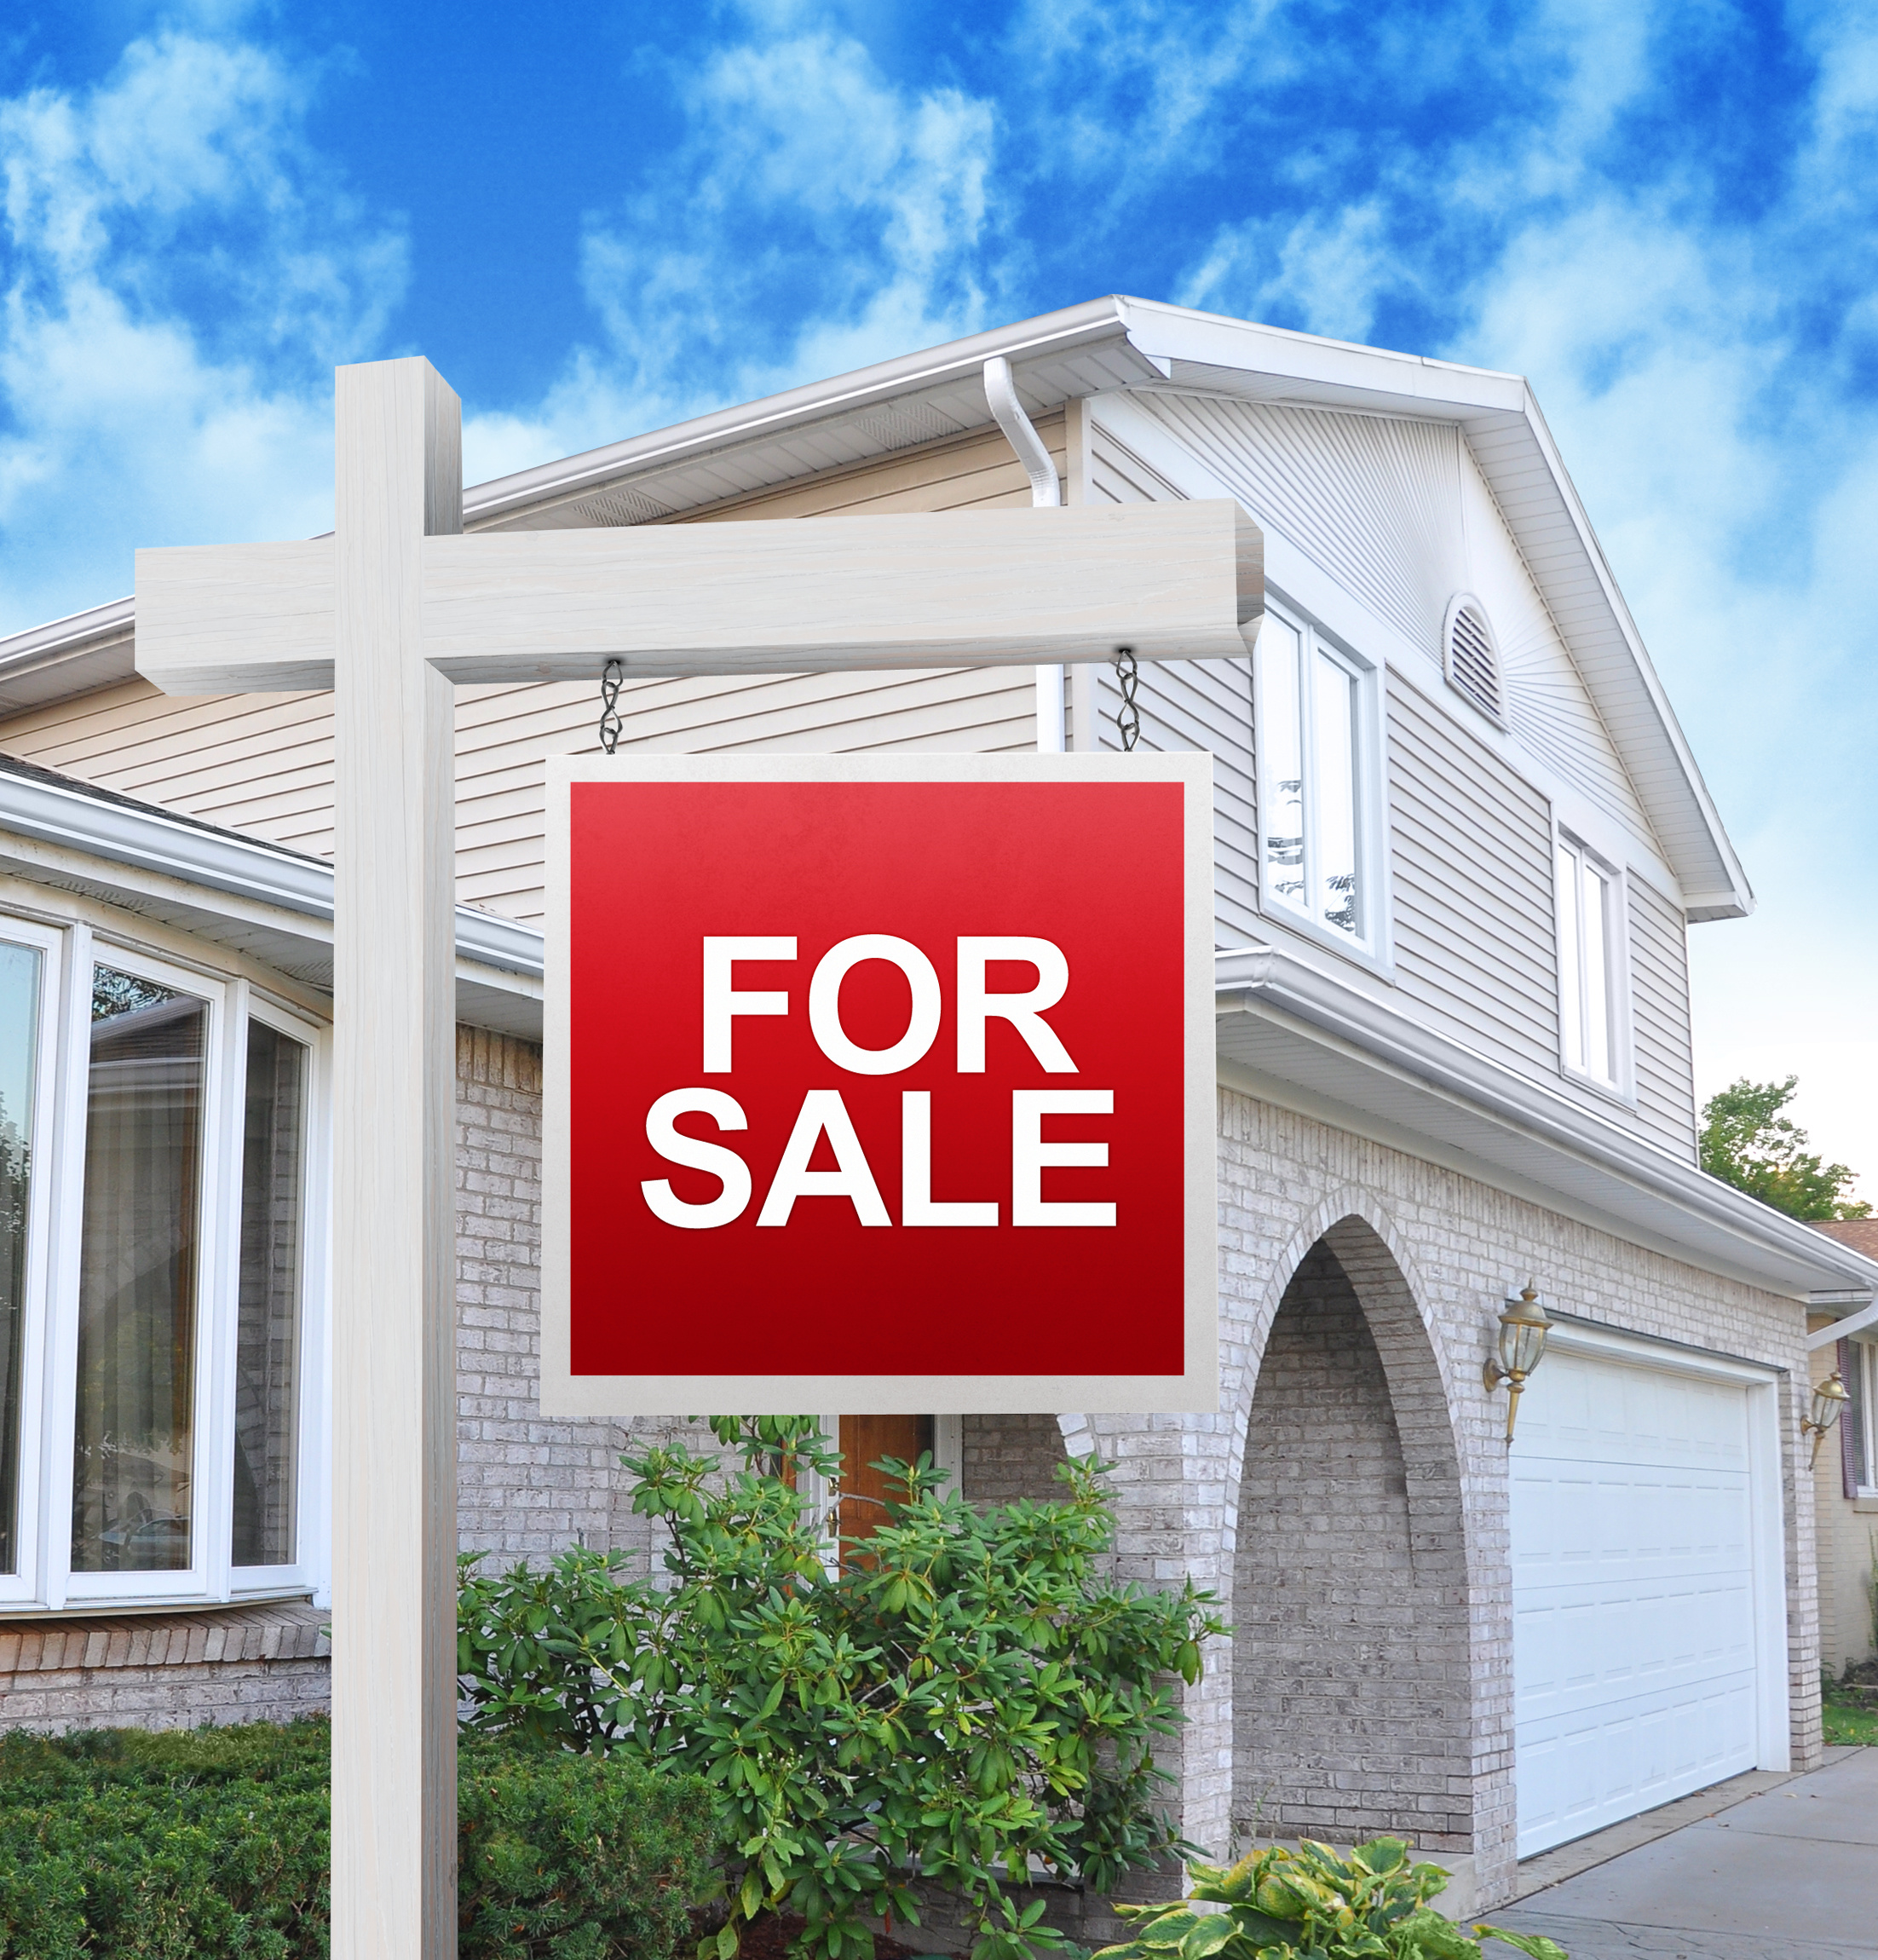 How can you sell your house For Sale by Owner, without using a Realtor?